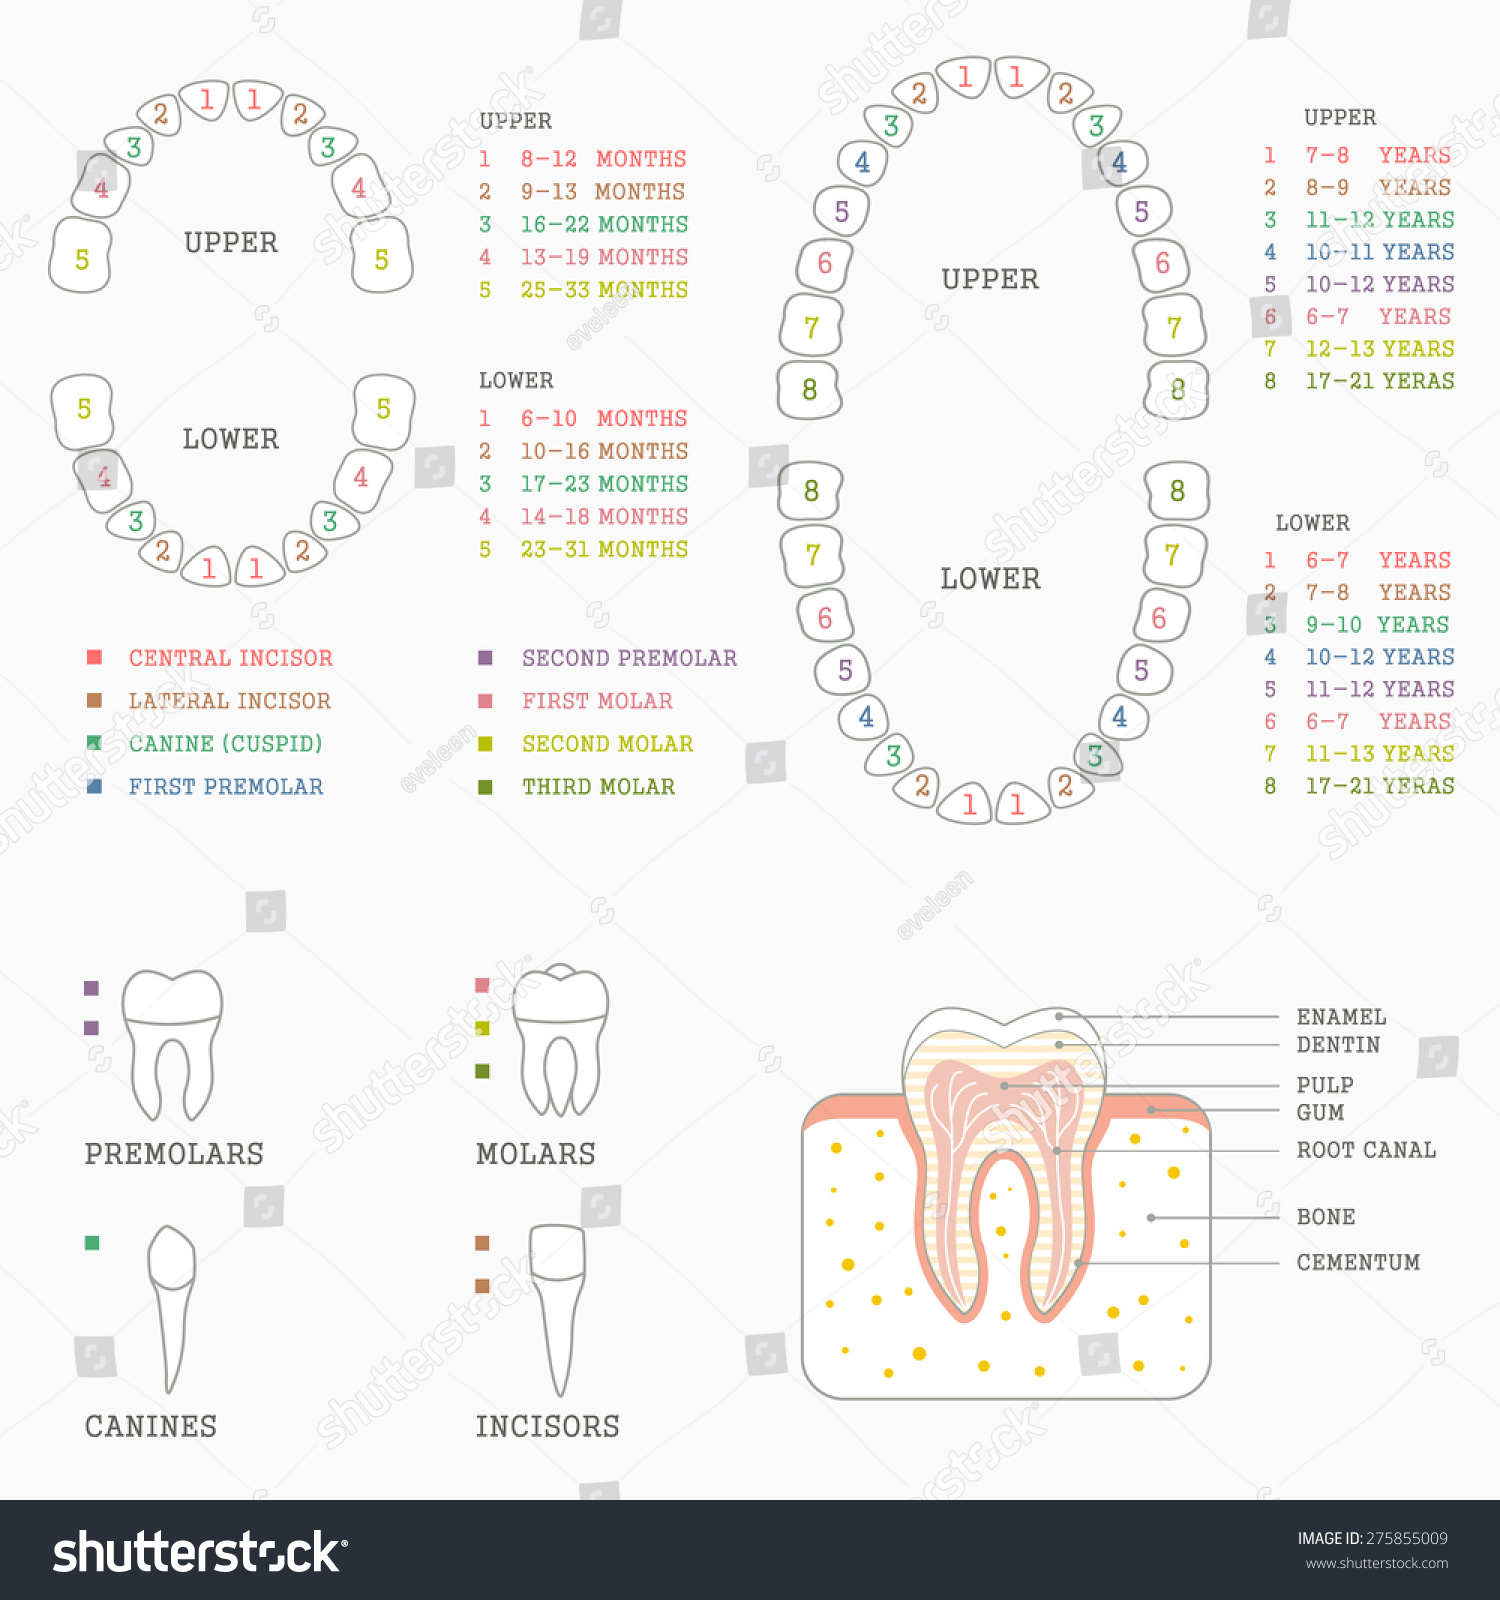 adult tooth diagram 12 volt boat wiring royalty free human anatomy chart